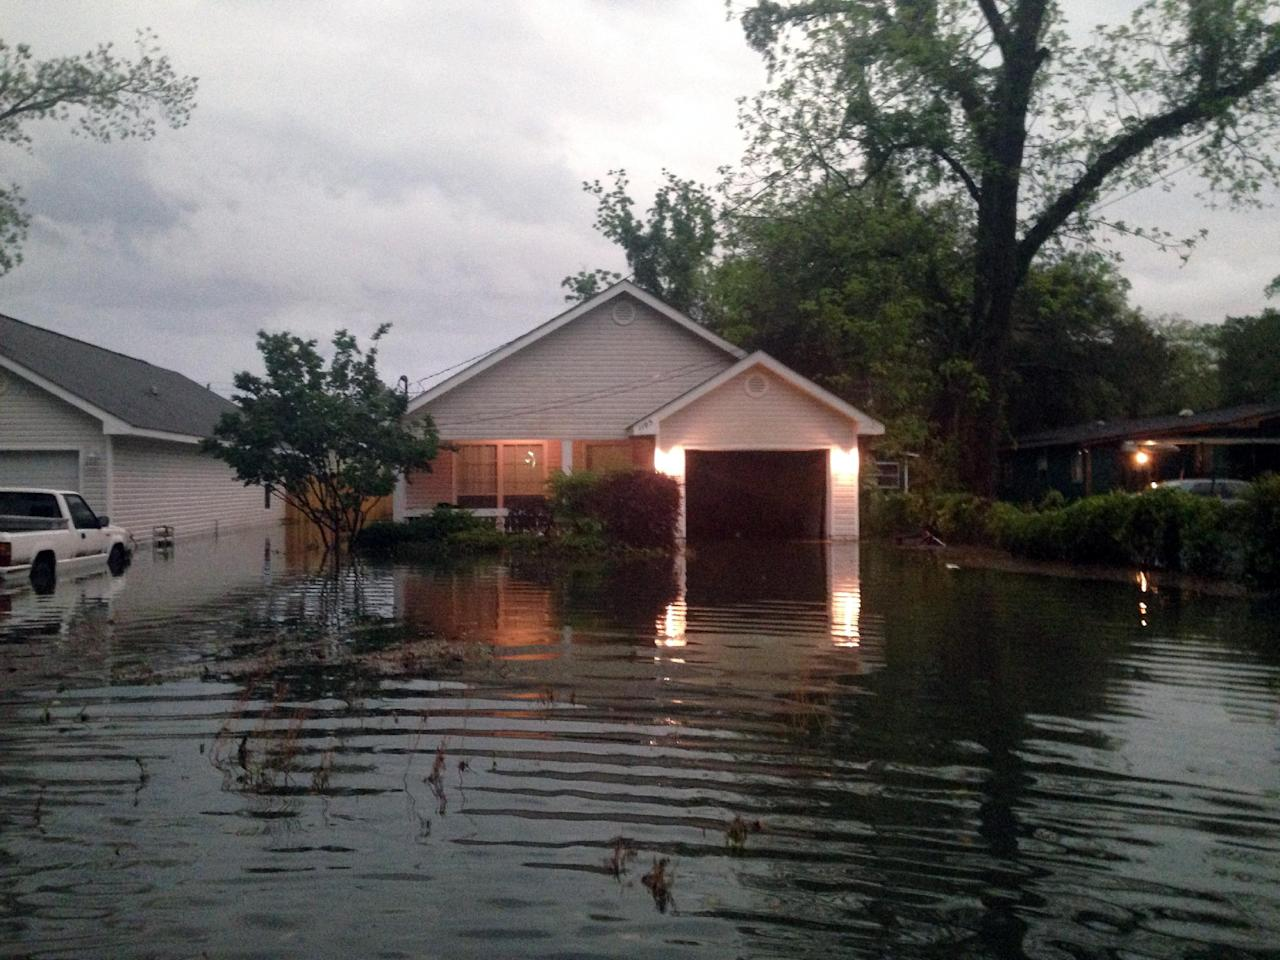 In this photo provided by Kyle Smith, floodwaters surround Smith's home in Pensacola, Fla. on Wednesday, April 30, 2014. Smith had to evacuate his home with his 18-month-old son Tuesday night after severe weather hit the Florida Panhandle, causing widespread flooding. (AP Photo/Kyle Smith)